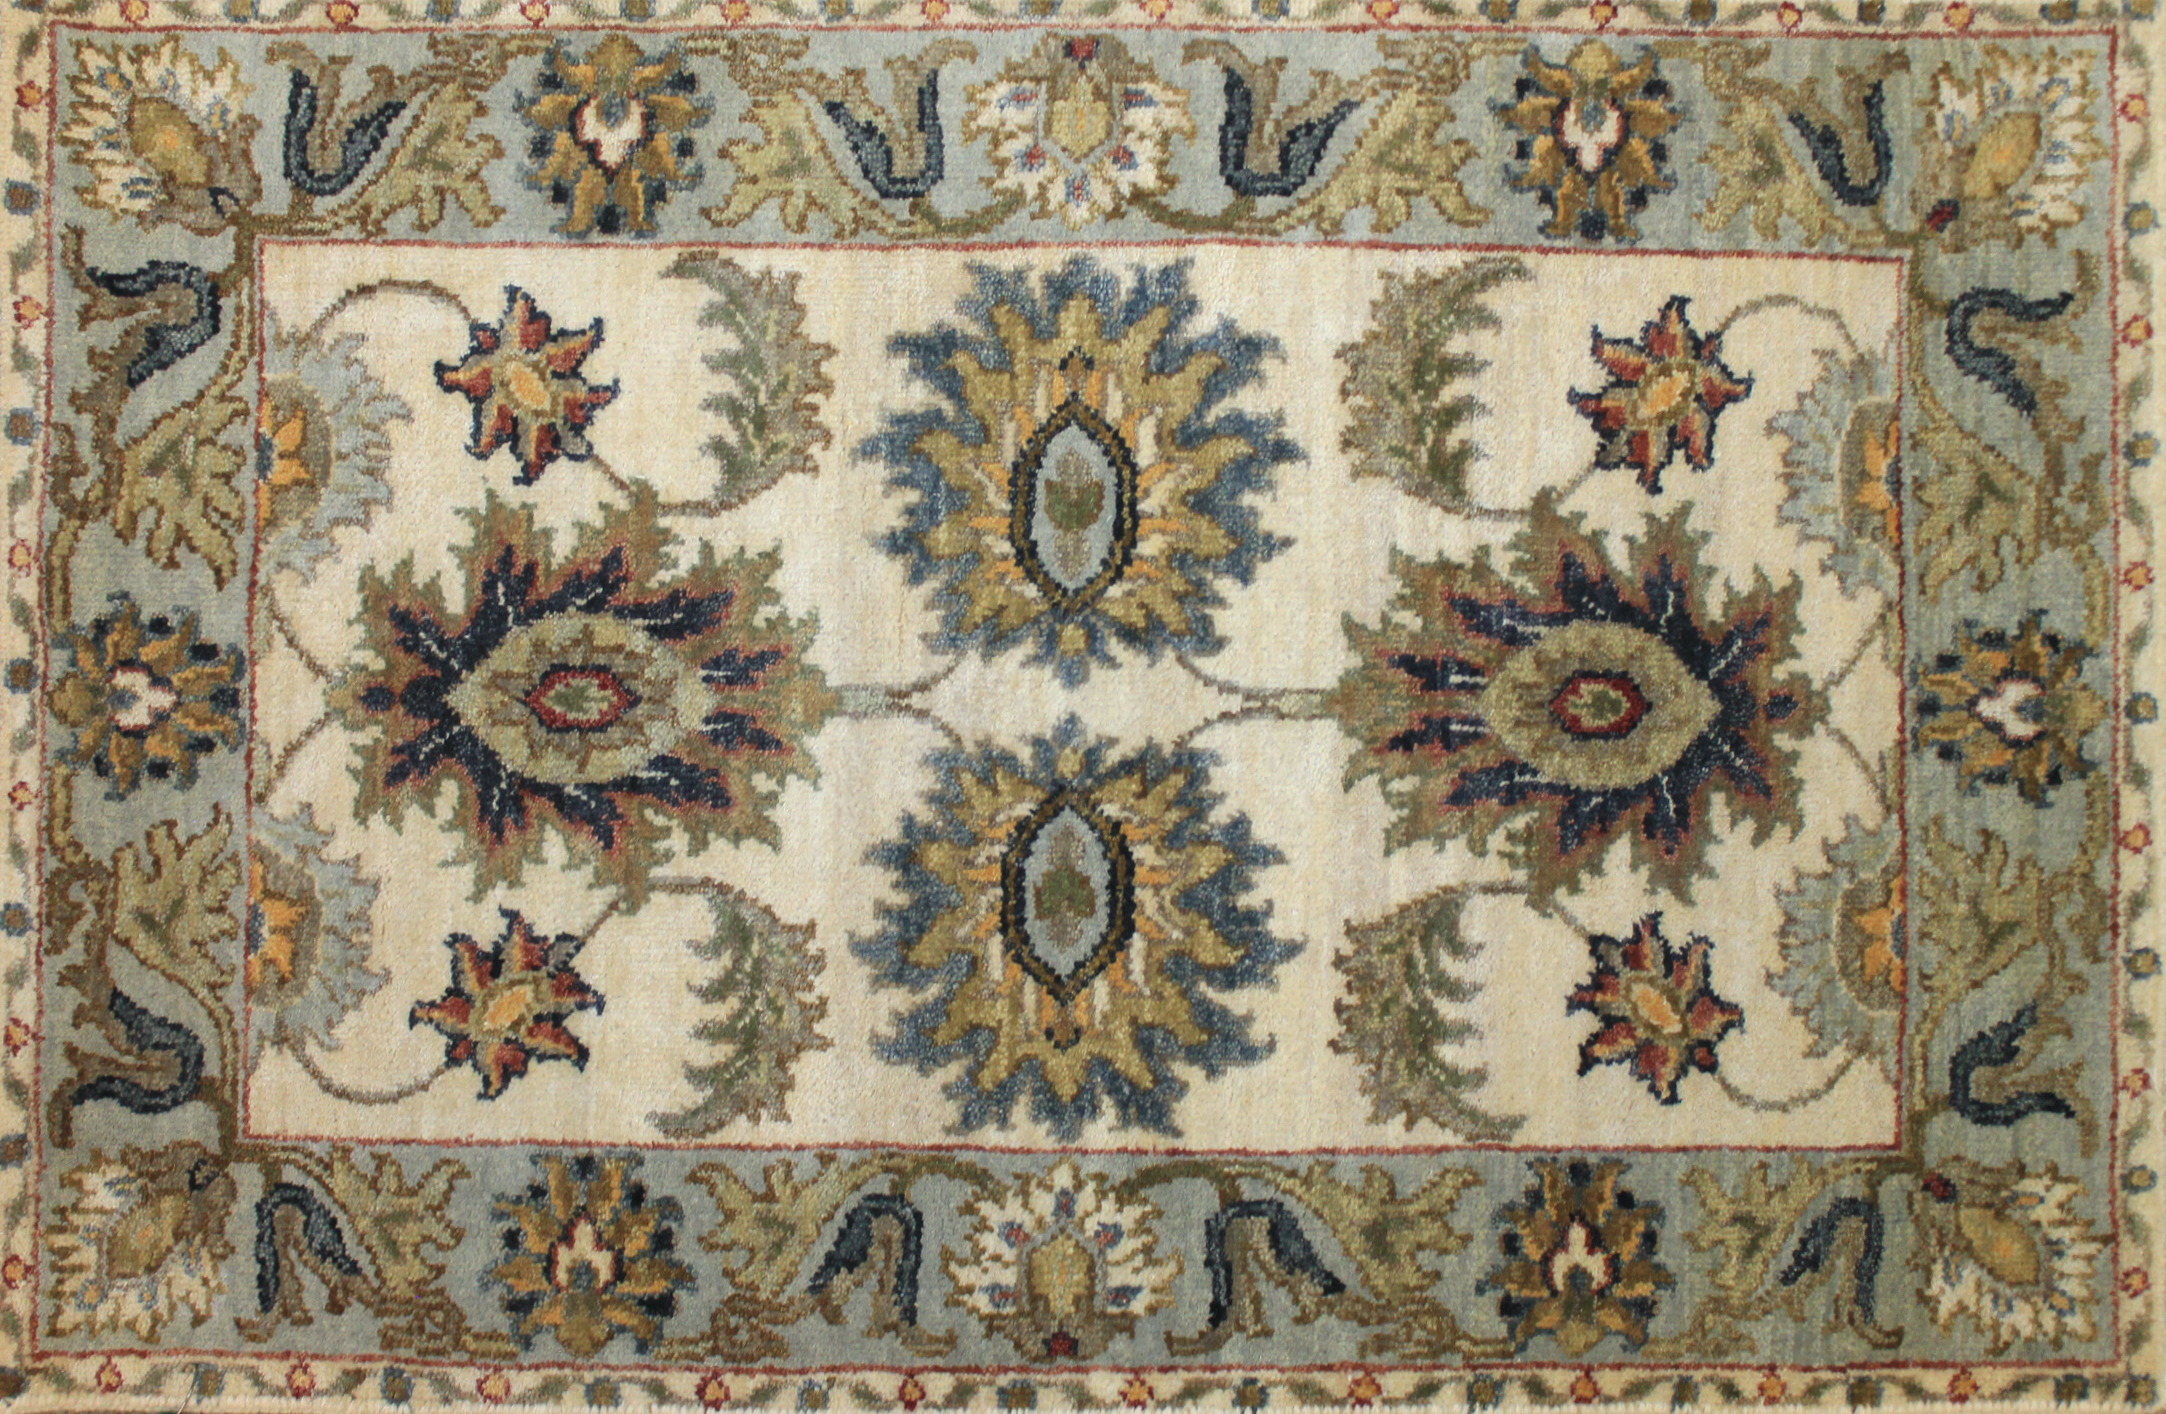 2X3 Traditional Hand Knotted Wool Area Rug - MR024793